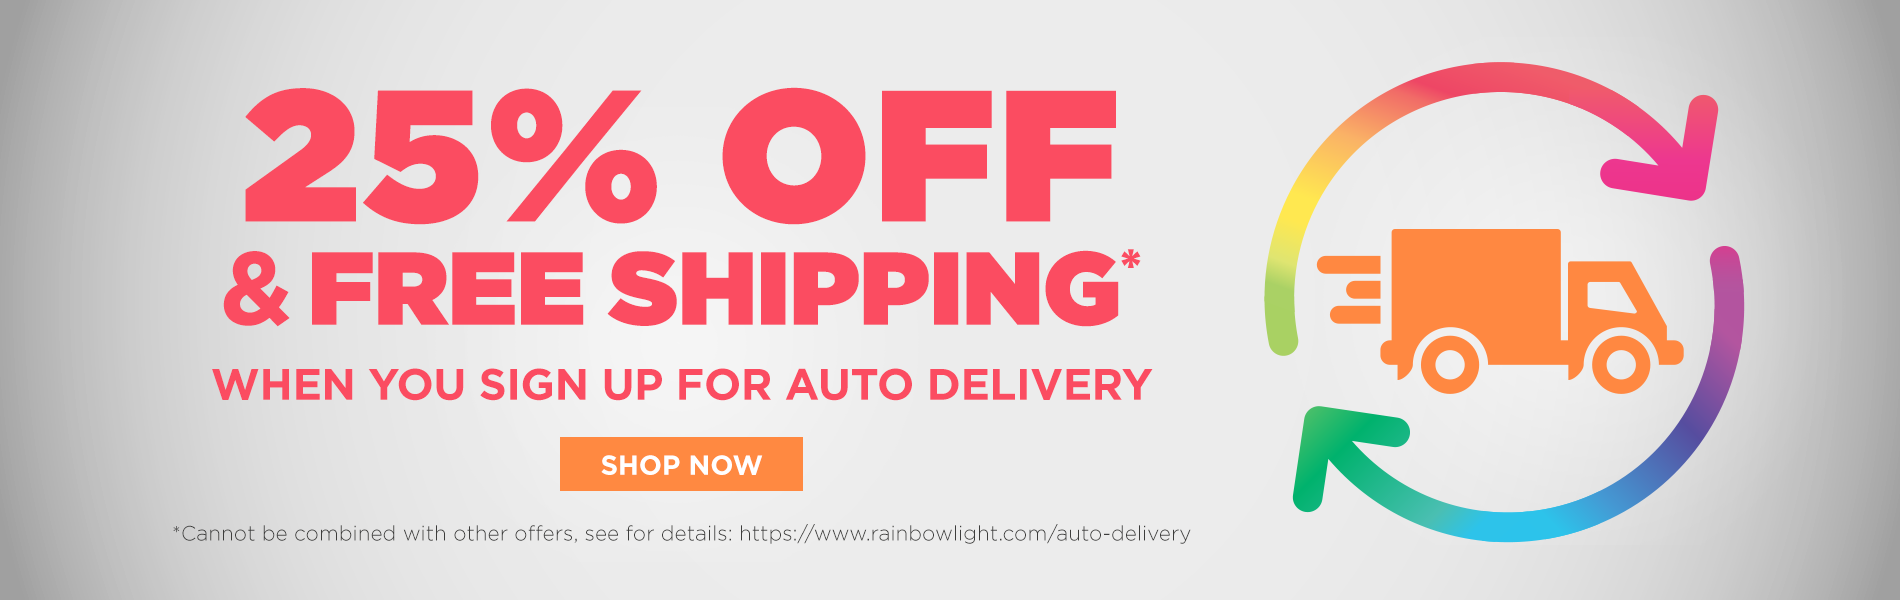 25% OFF and Free Shipping When You Sign Up for Auto Delivery. Shop Now!